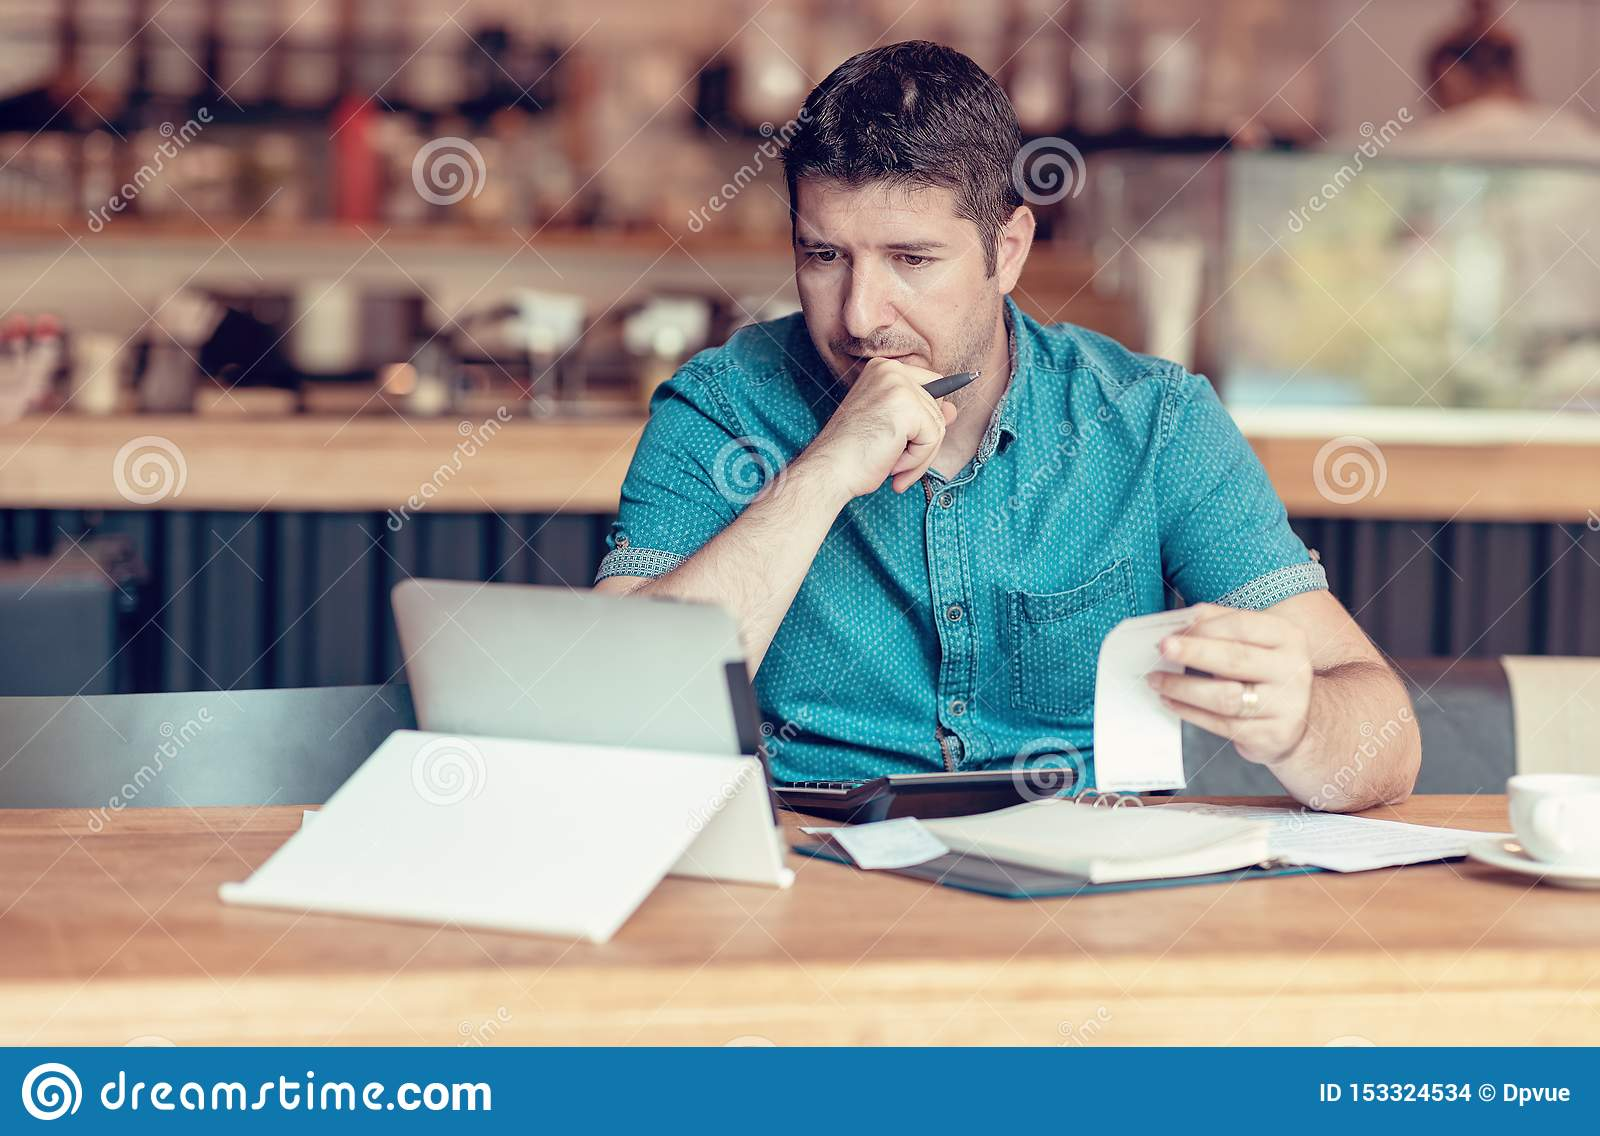 Restaurant owner checking monthly reports on a tablet, bills and expenses of his small business. Start-up entrepreneur concerned